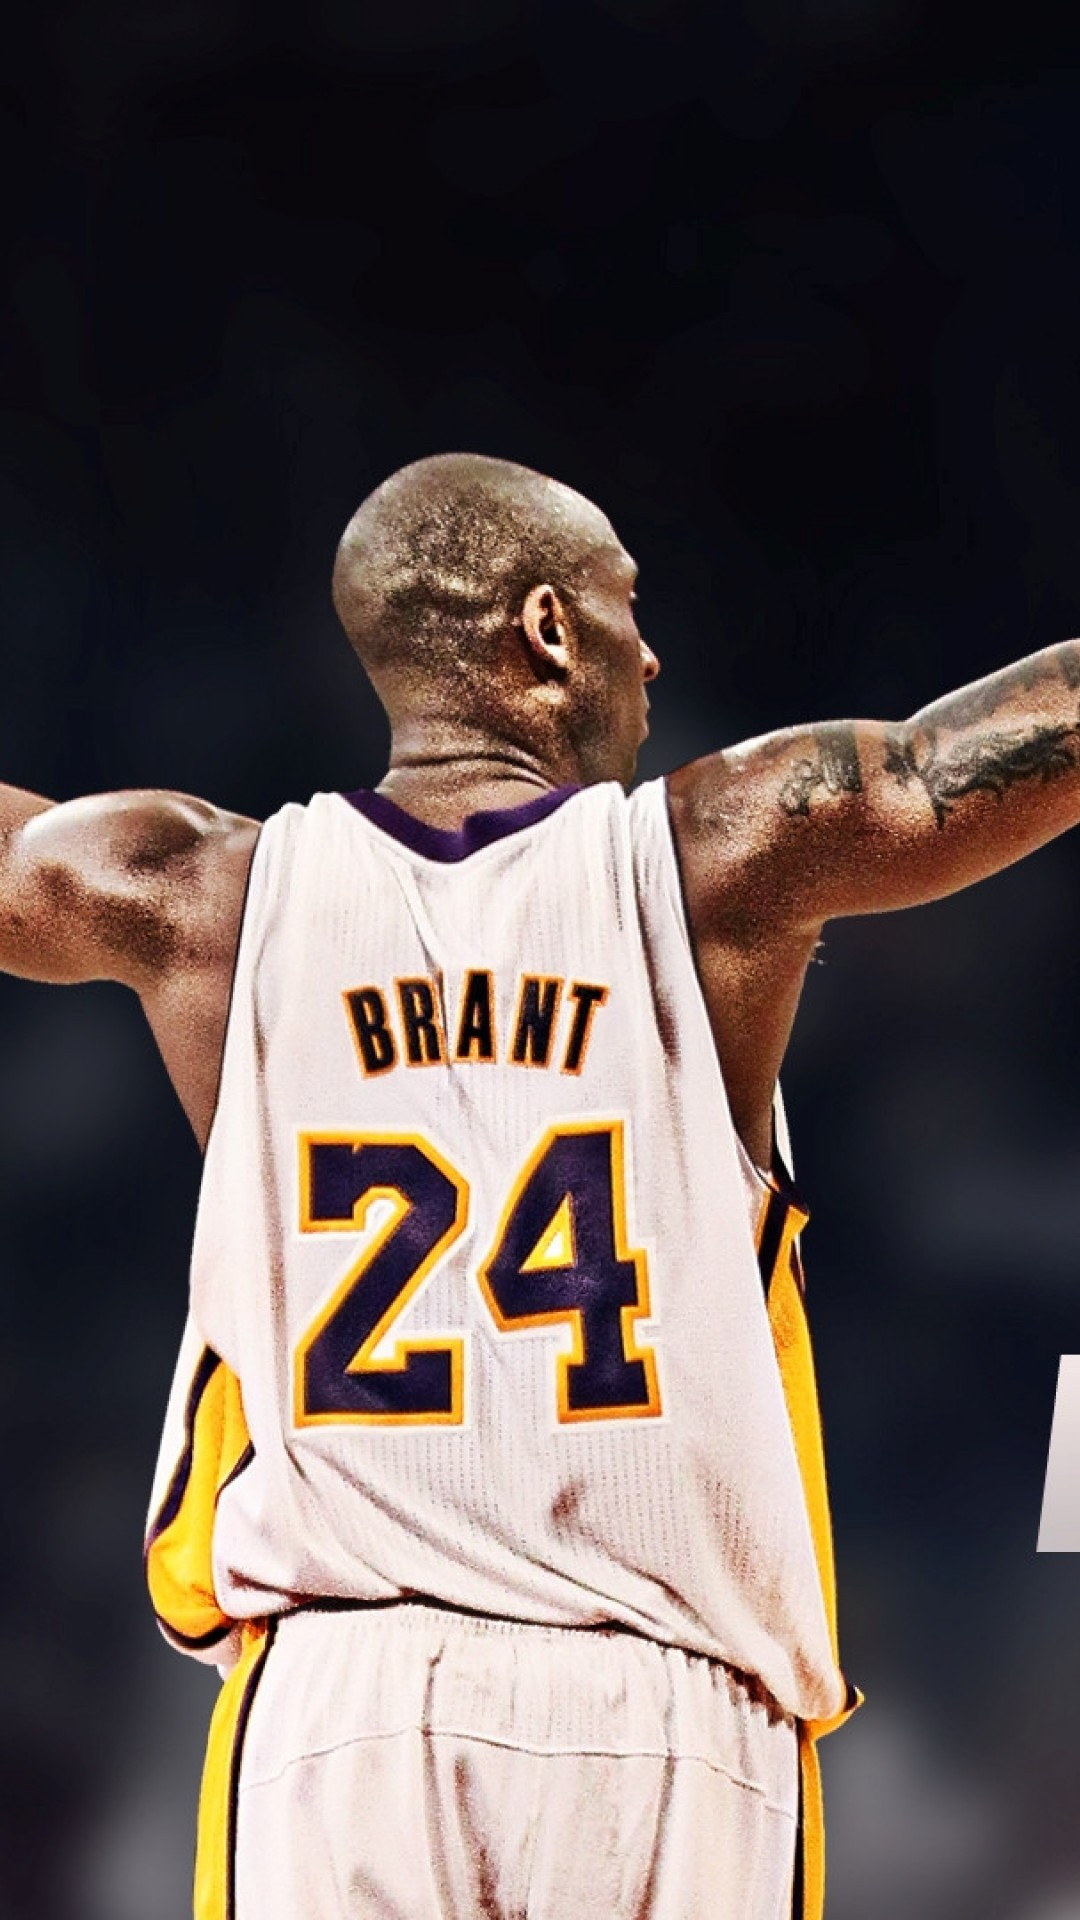 Download kobe bryant hd wallpaper for desktop and mobiles - Kobe bryant wallpaper free download ...